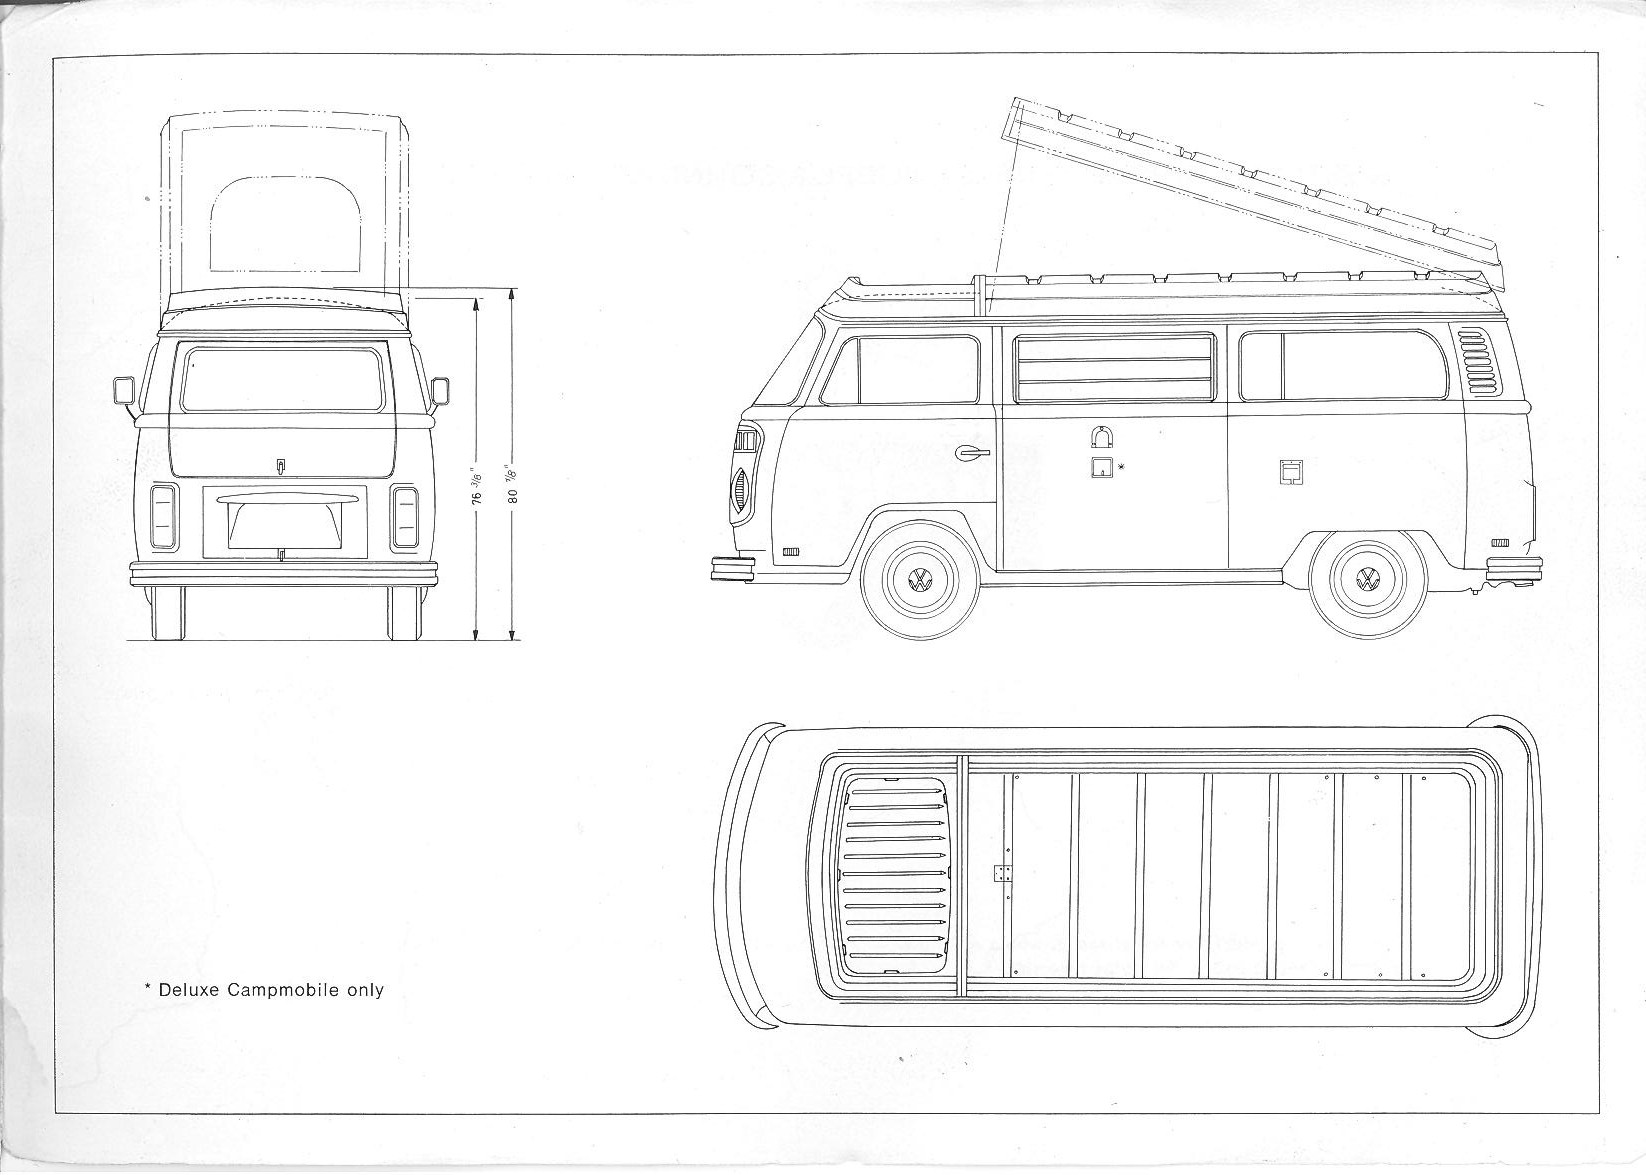 TheSamba.com :: 1976 VW Campmobile Owner's Manual